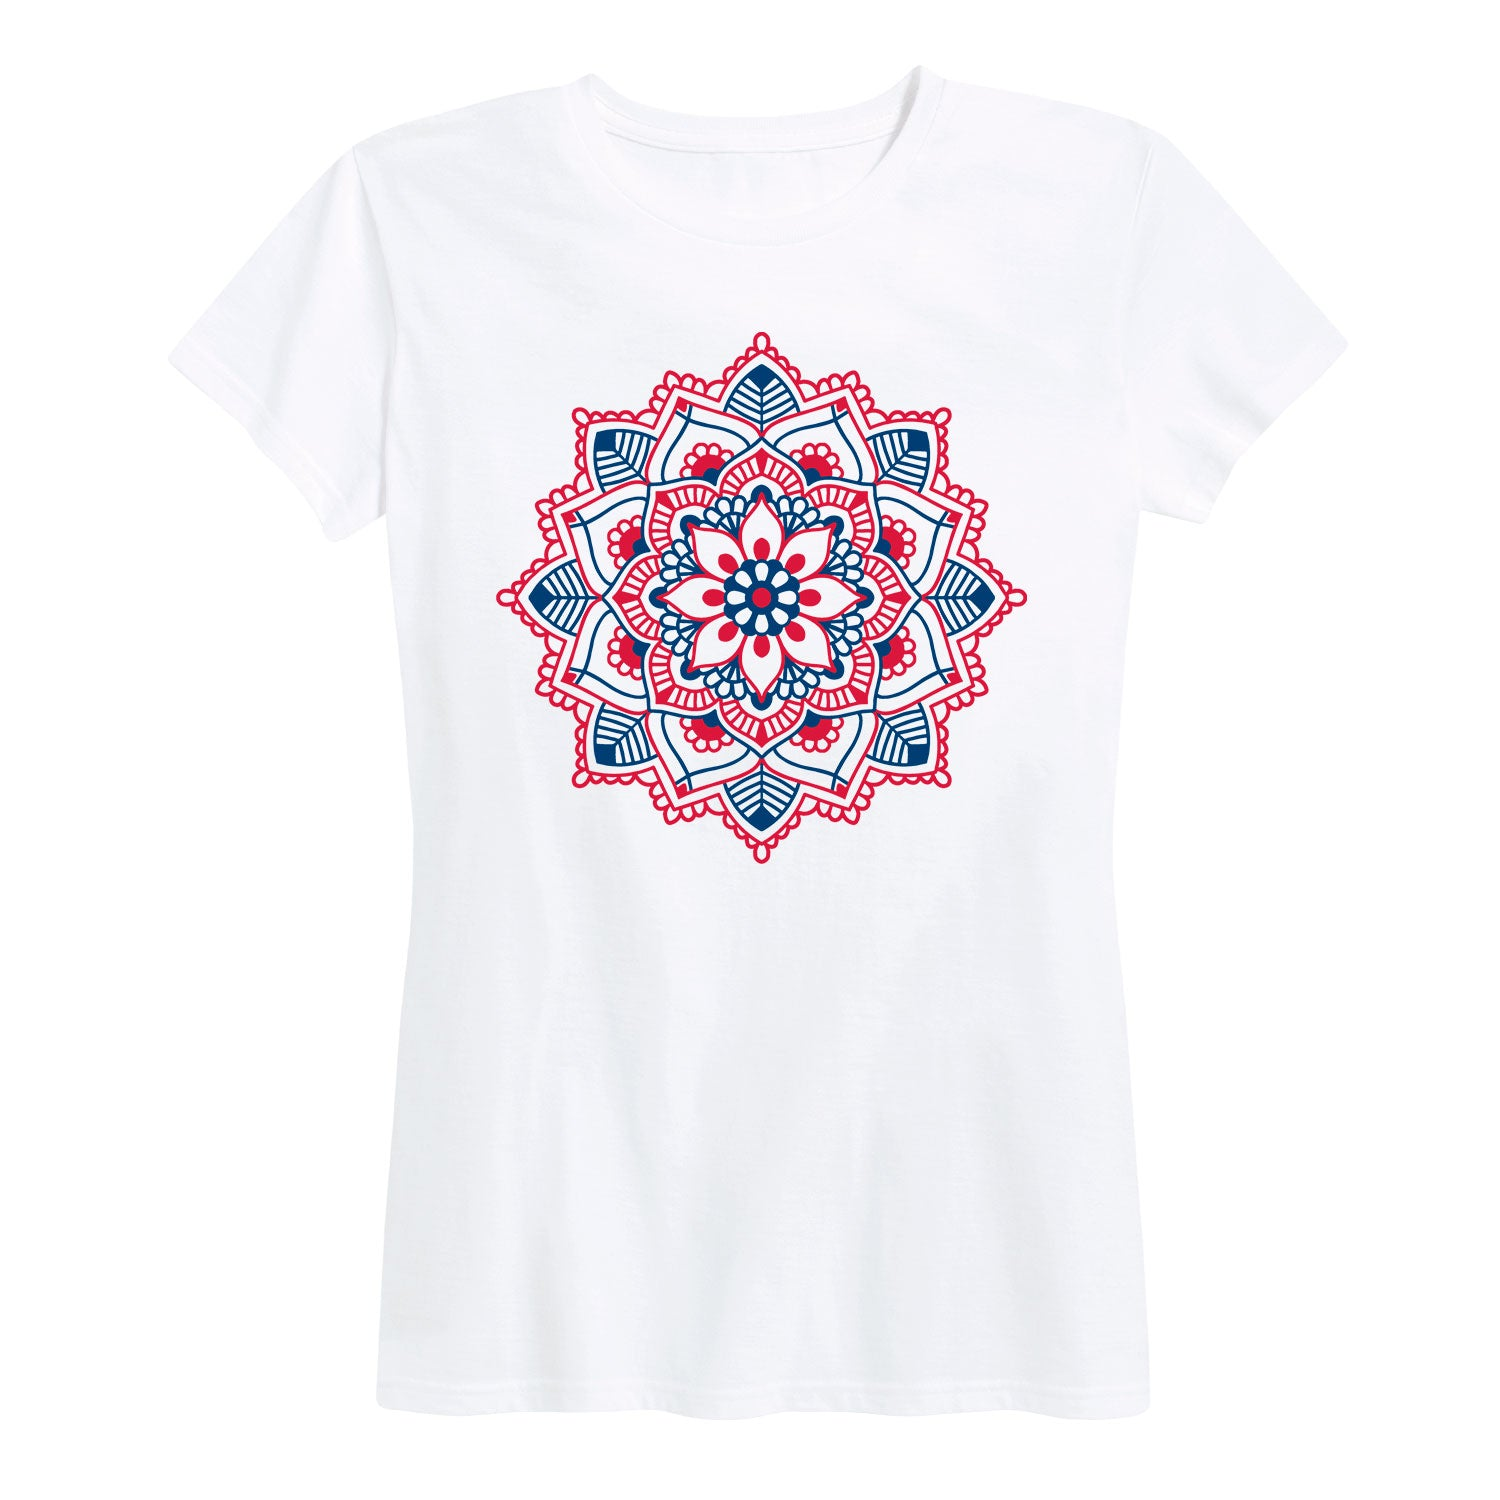 Red White Blue Mandala - Women's Short Sleeve T-Shirt